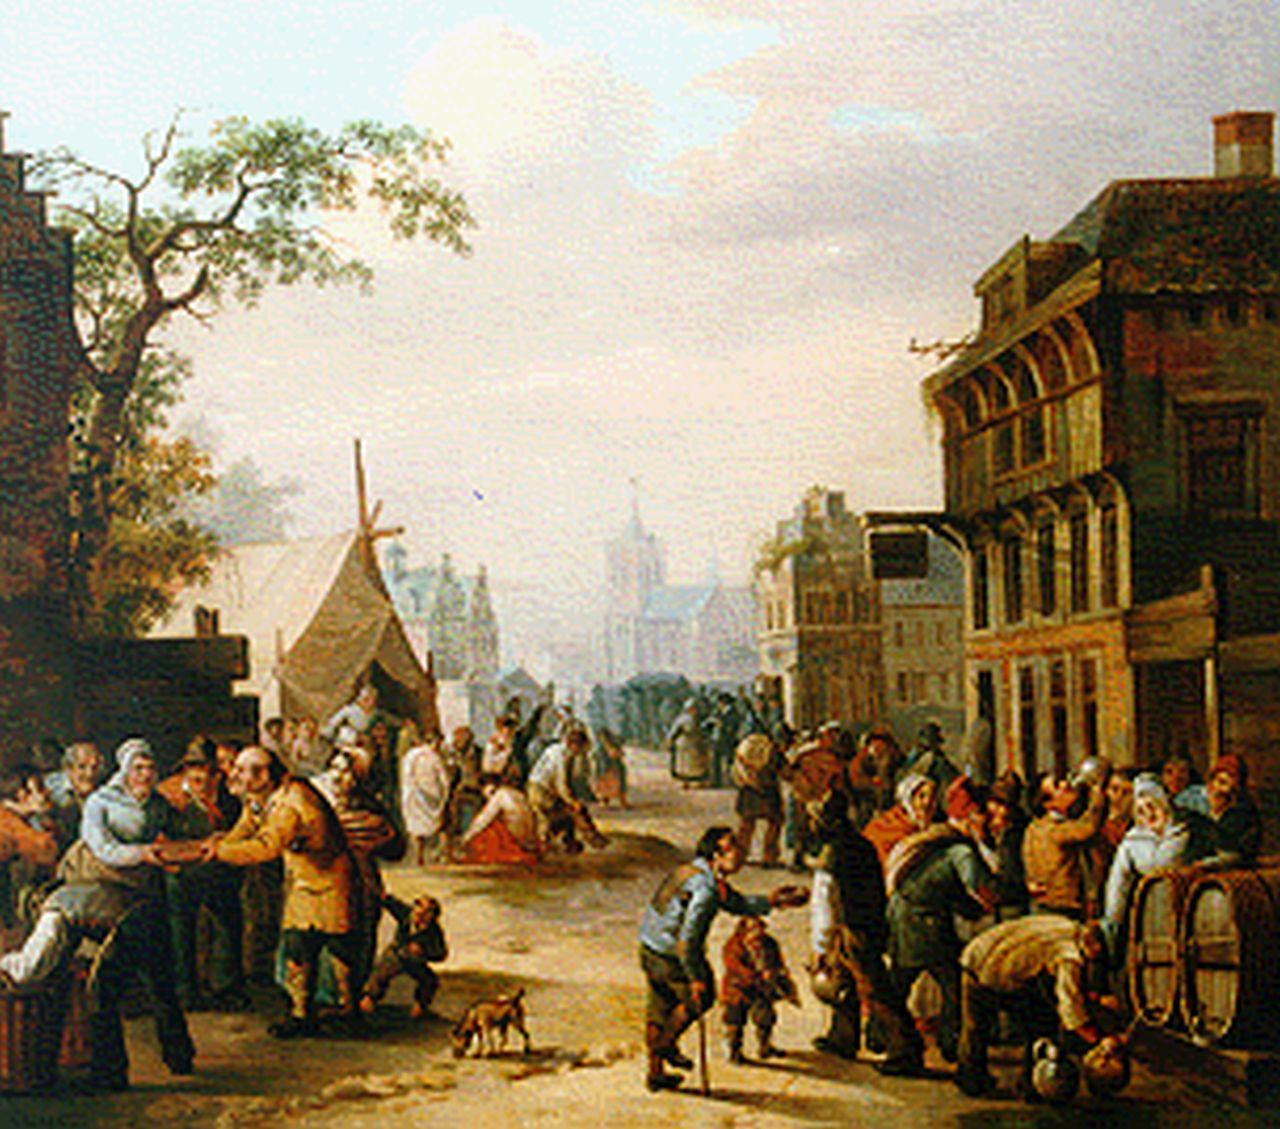 Gerrit Schimmelpenninck Gzn | Daily activites in a Dutch town, oil on canvas, 47.0 x 53.0 cm, signed l.r.